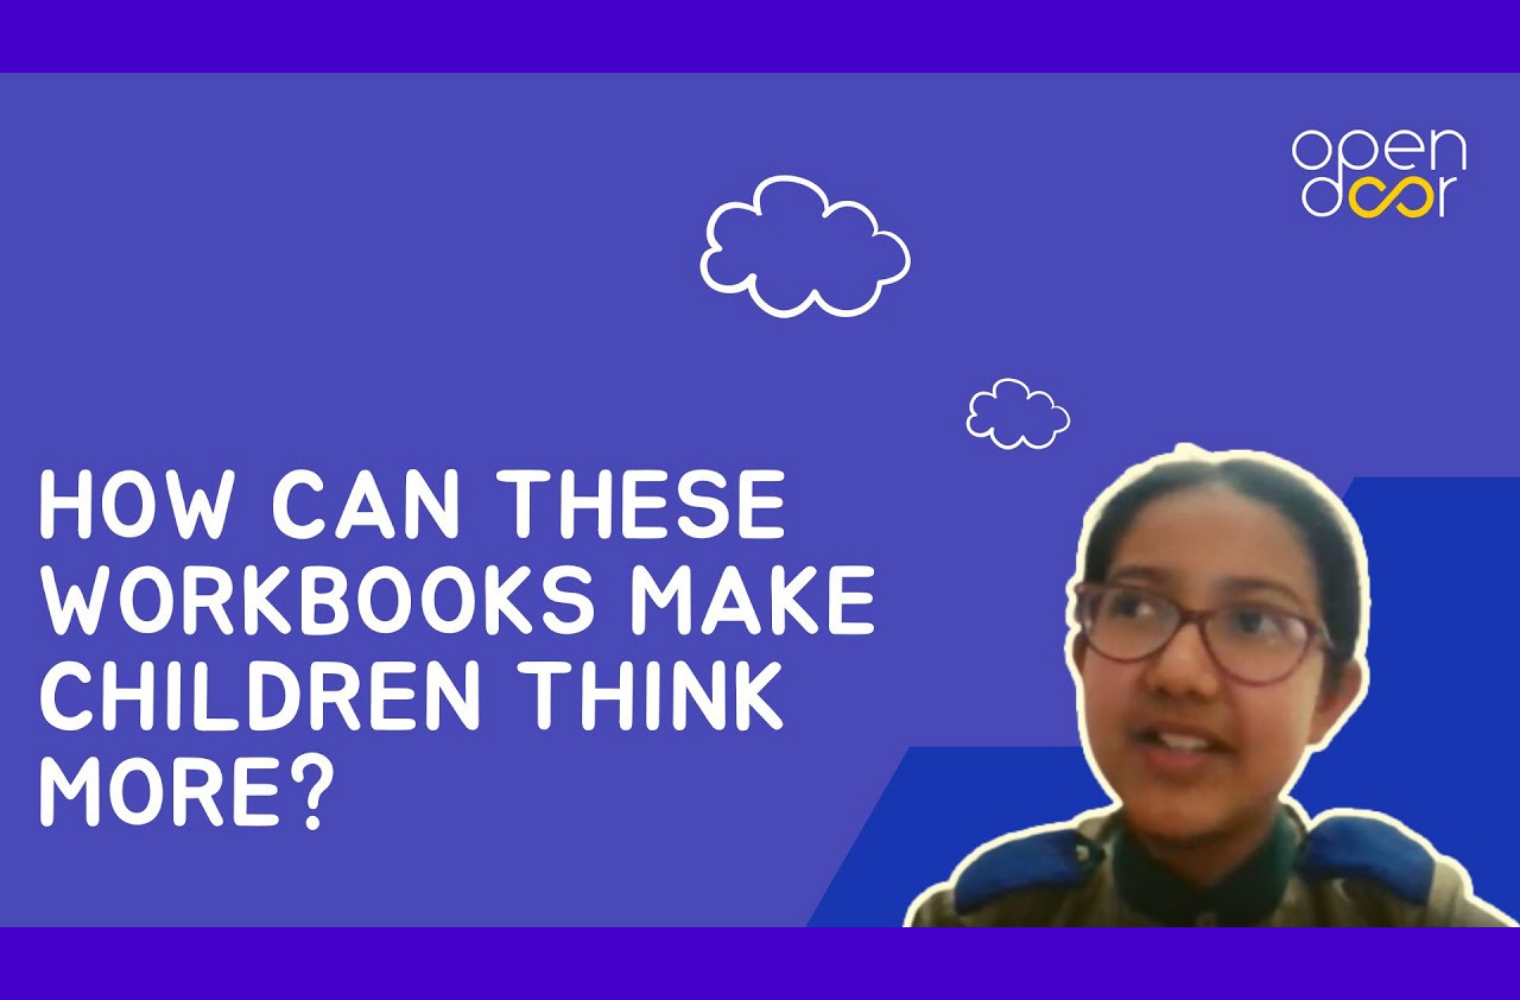 How is one book making children excited about Science and Math at this school?